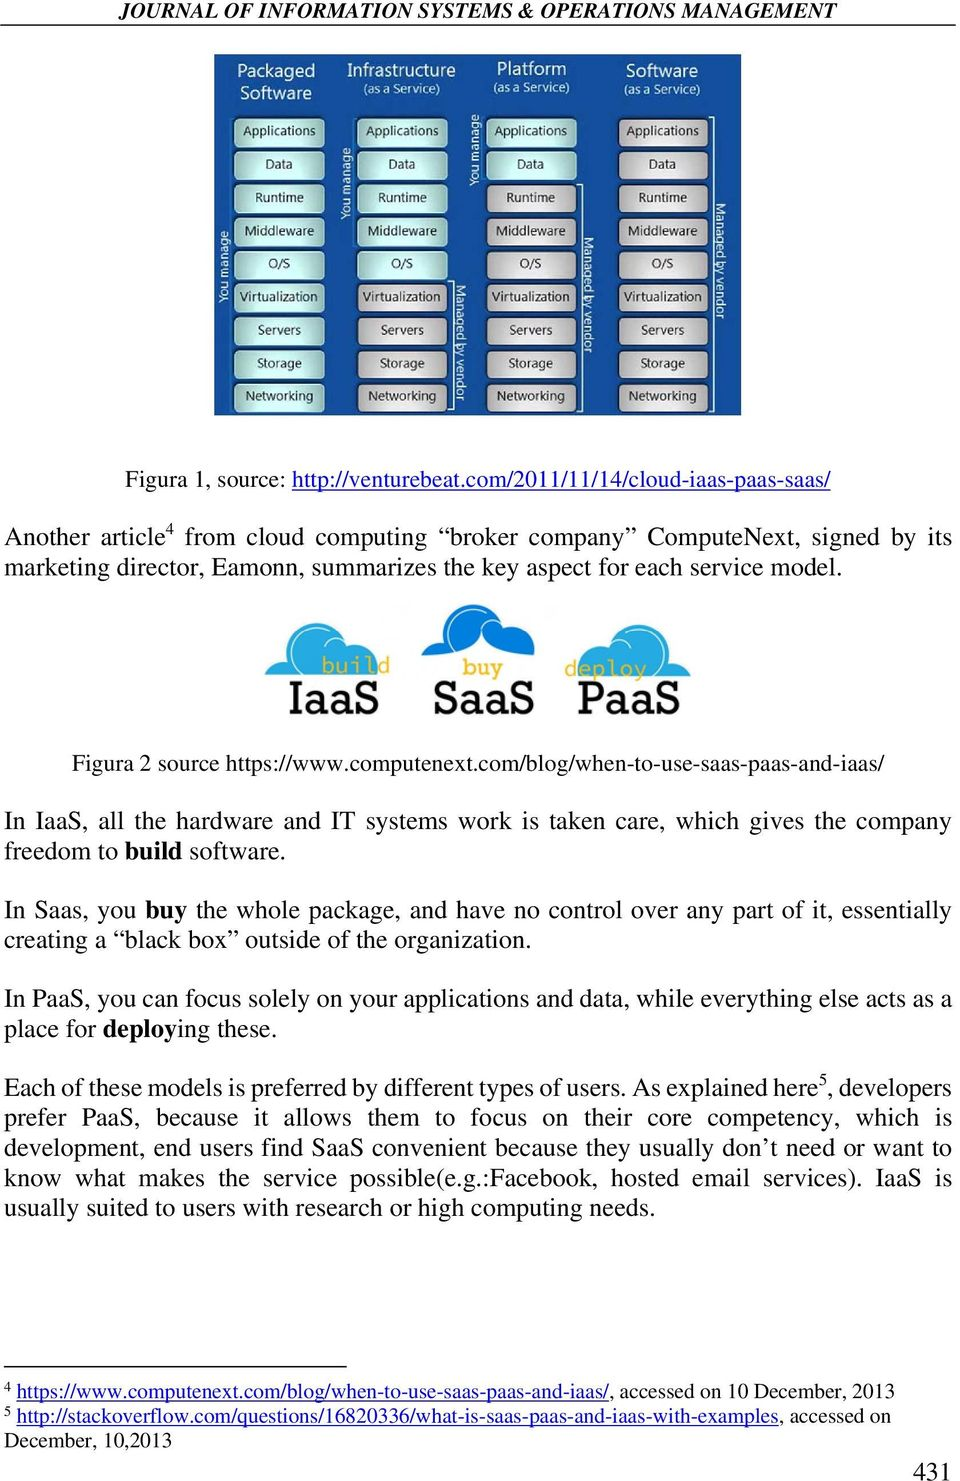 Figura 2 source https://www.computenext.com/blog/when-to-use-saas-paas-and-iaas/ In, all the hardware and IT systems work is taken care, which gives the company freedom to build software.